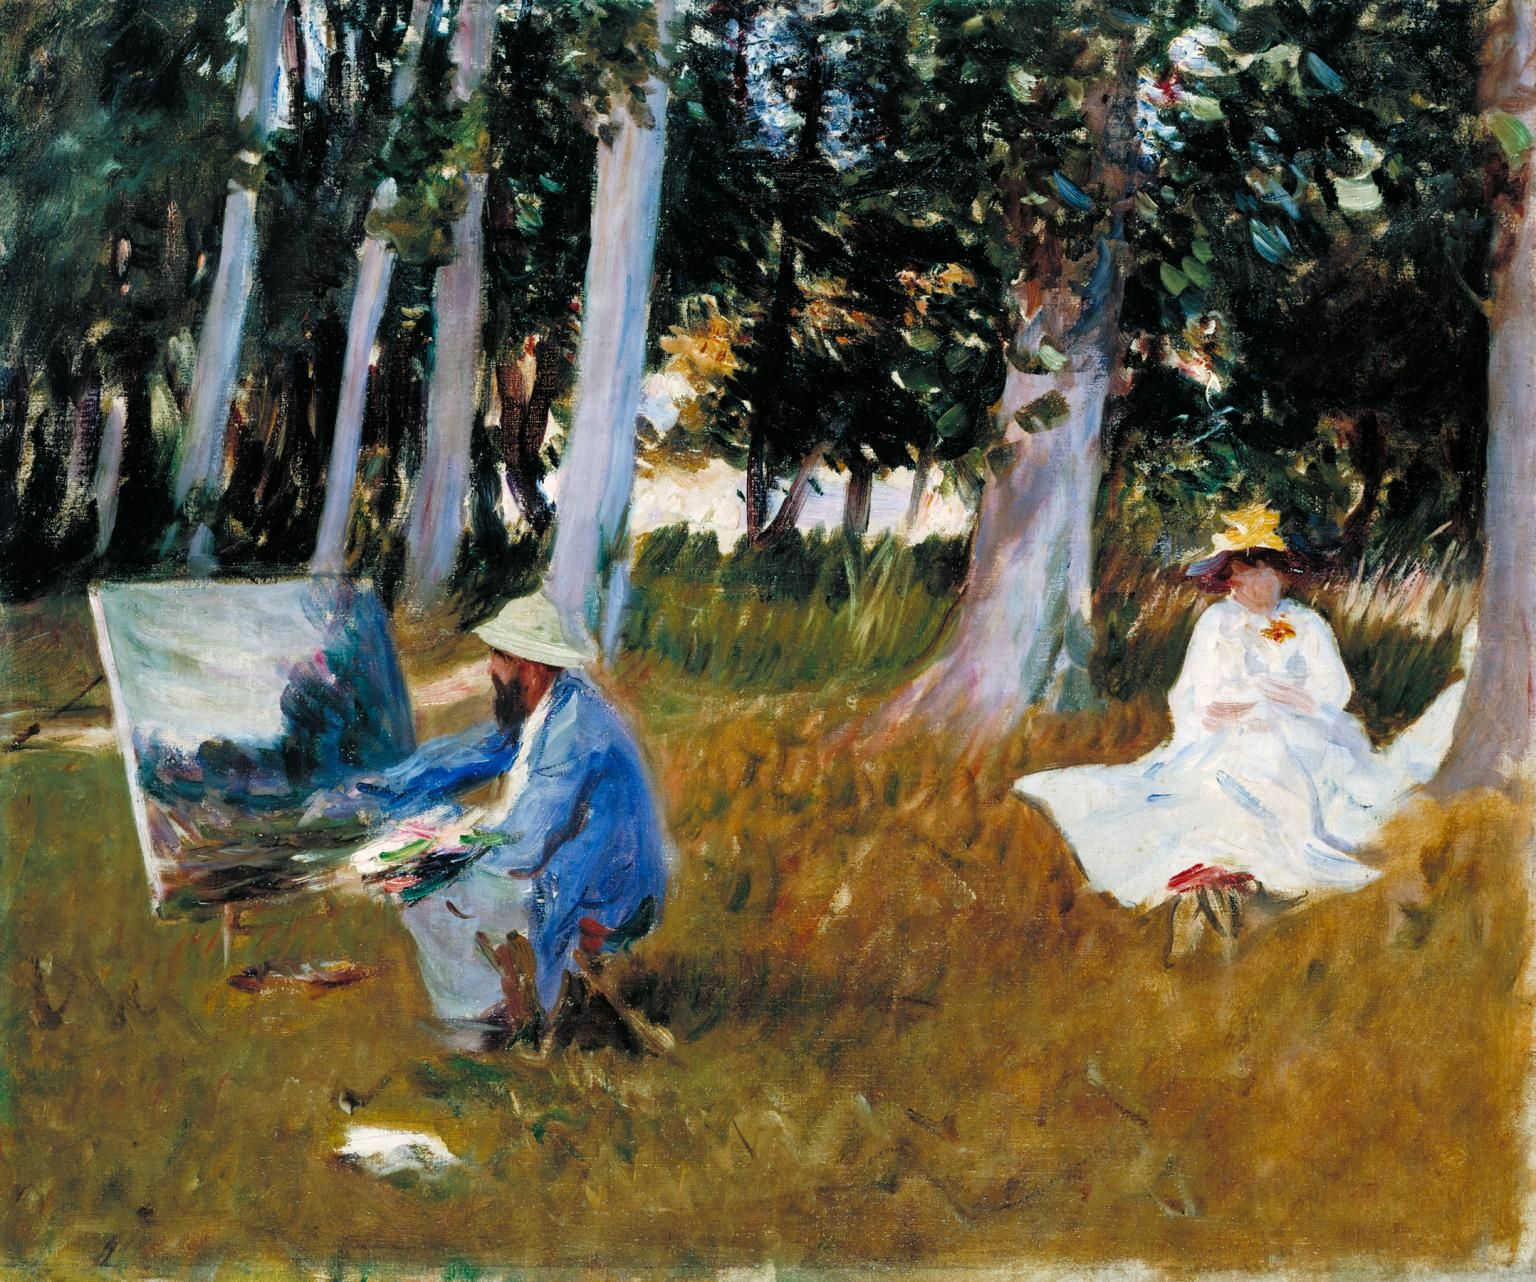 john singer sargent claude monet painting by the edge of a wood john singer sargent claude monet painting by the edge of a wood